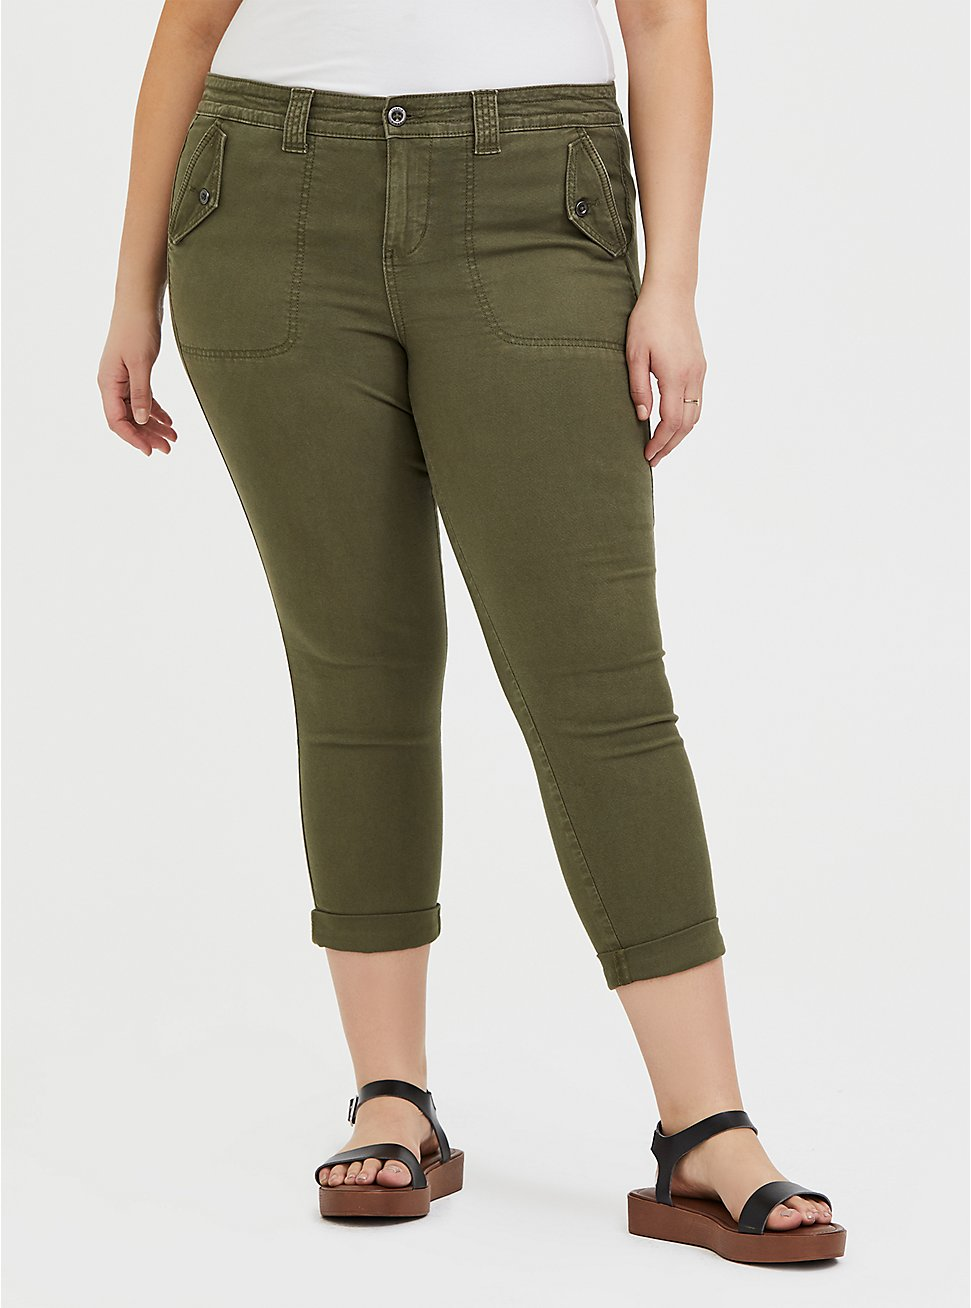 Crop Military Pant - Canvas Olive Green, ARMY GREEN, hi-res